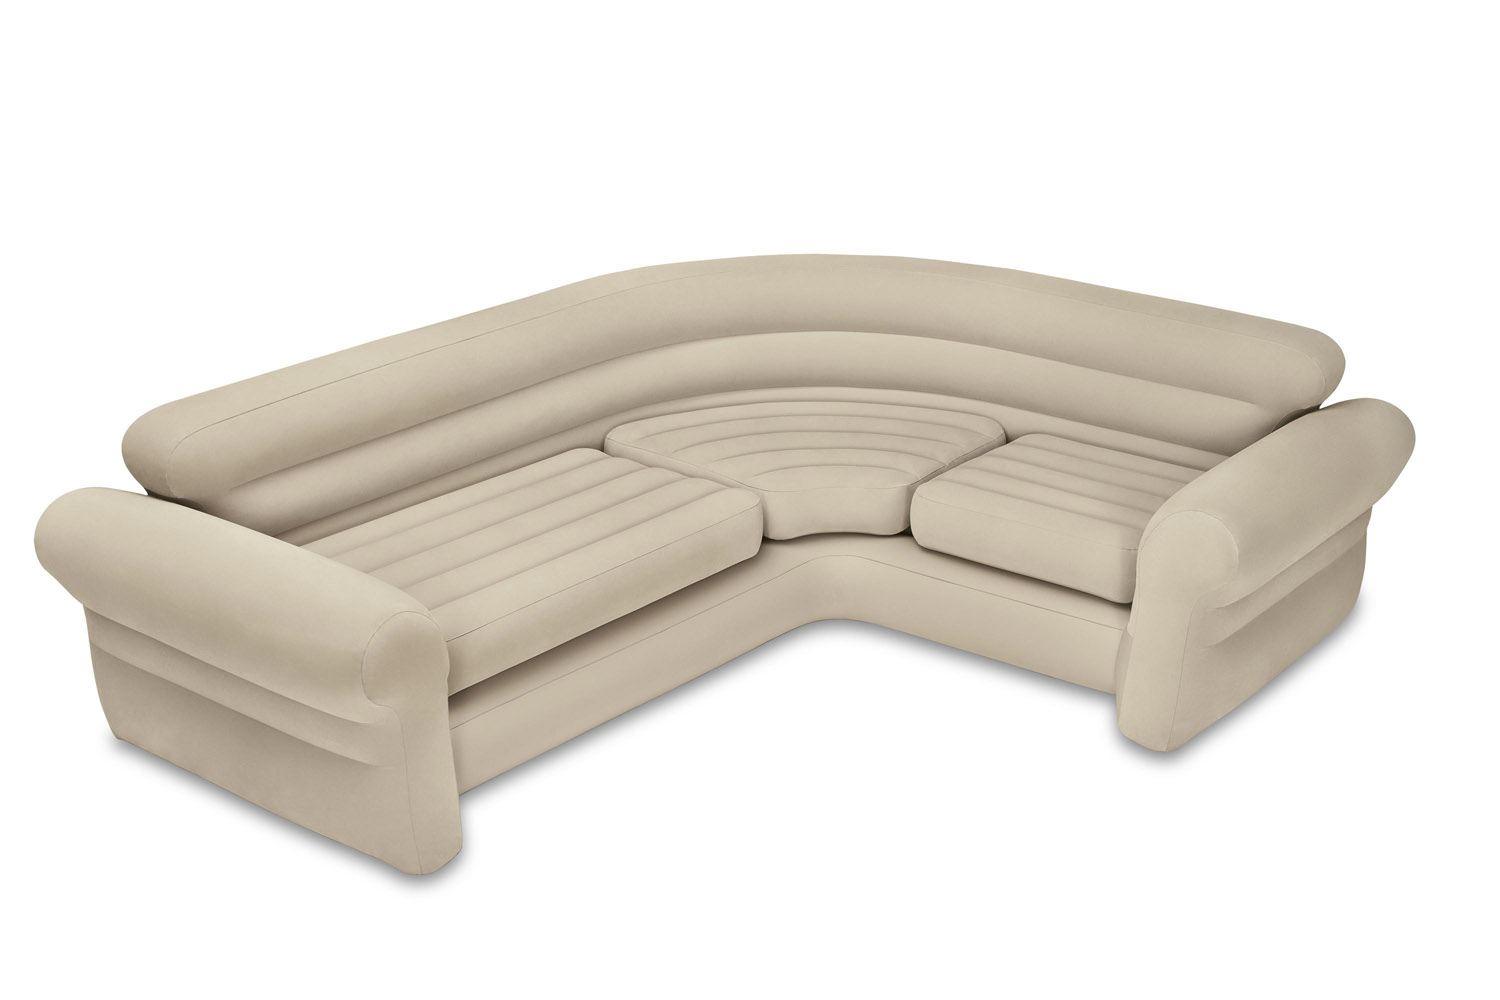 Big Sofa Occasion Intex Inflatable Corner Couch